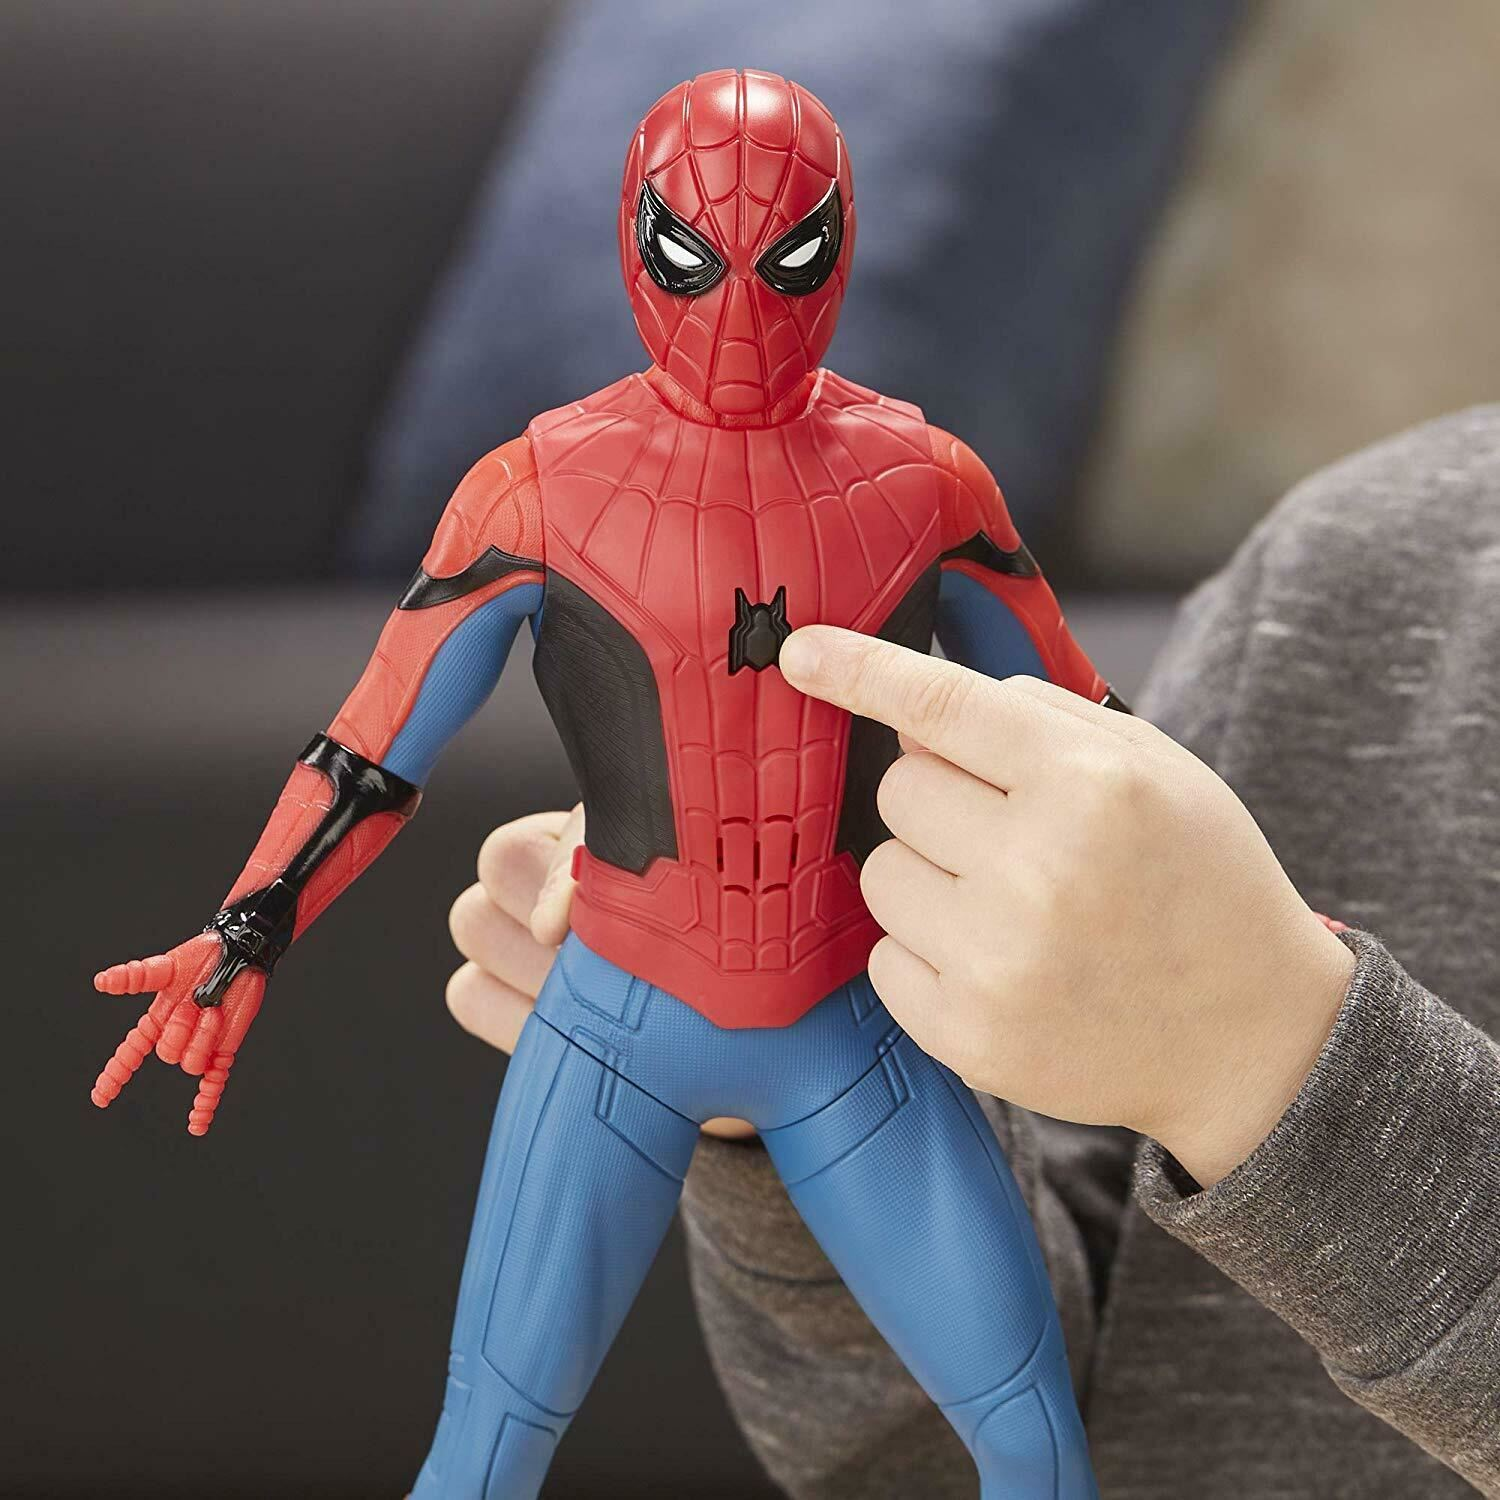 Marvel-Spider-Man-3-in-1-Far-From-Home-Web-Gear-Action-Figure-Toy-2019-Xmas-Gift thumbnail 3